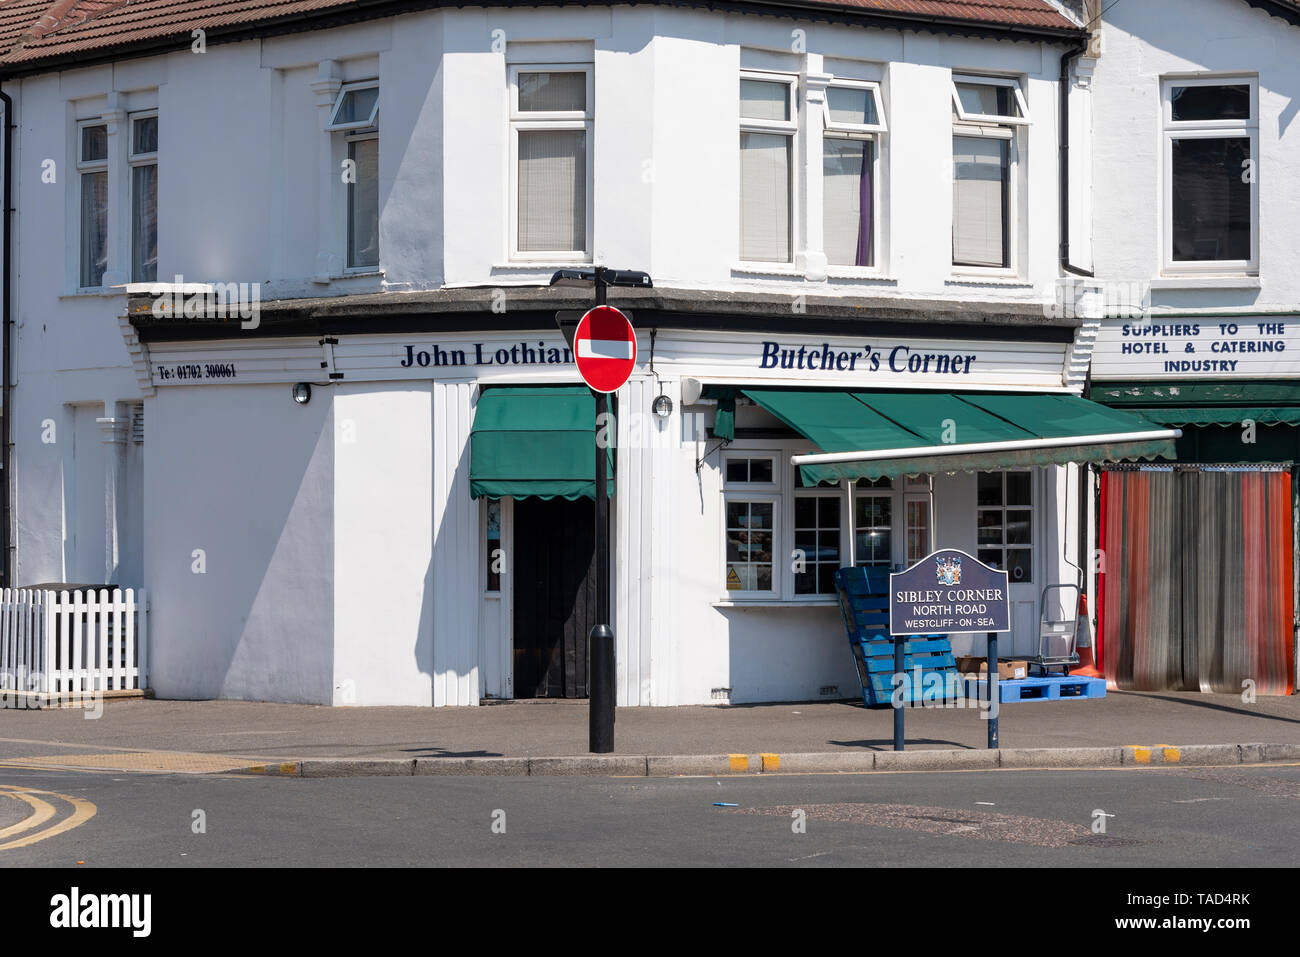 John Lothian Butcher's Corner on Sibley Corner, North Road, Westcliff on Sea, Essex, UK. Lothian Meats business premises shop. Butcher - Stock Image